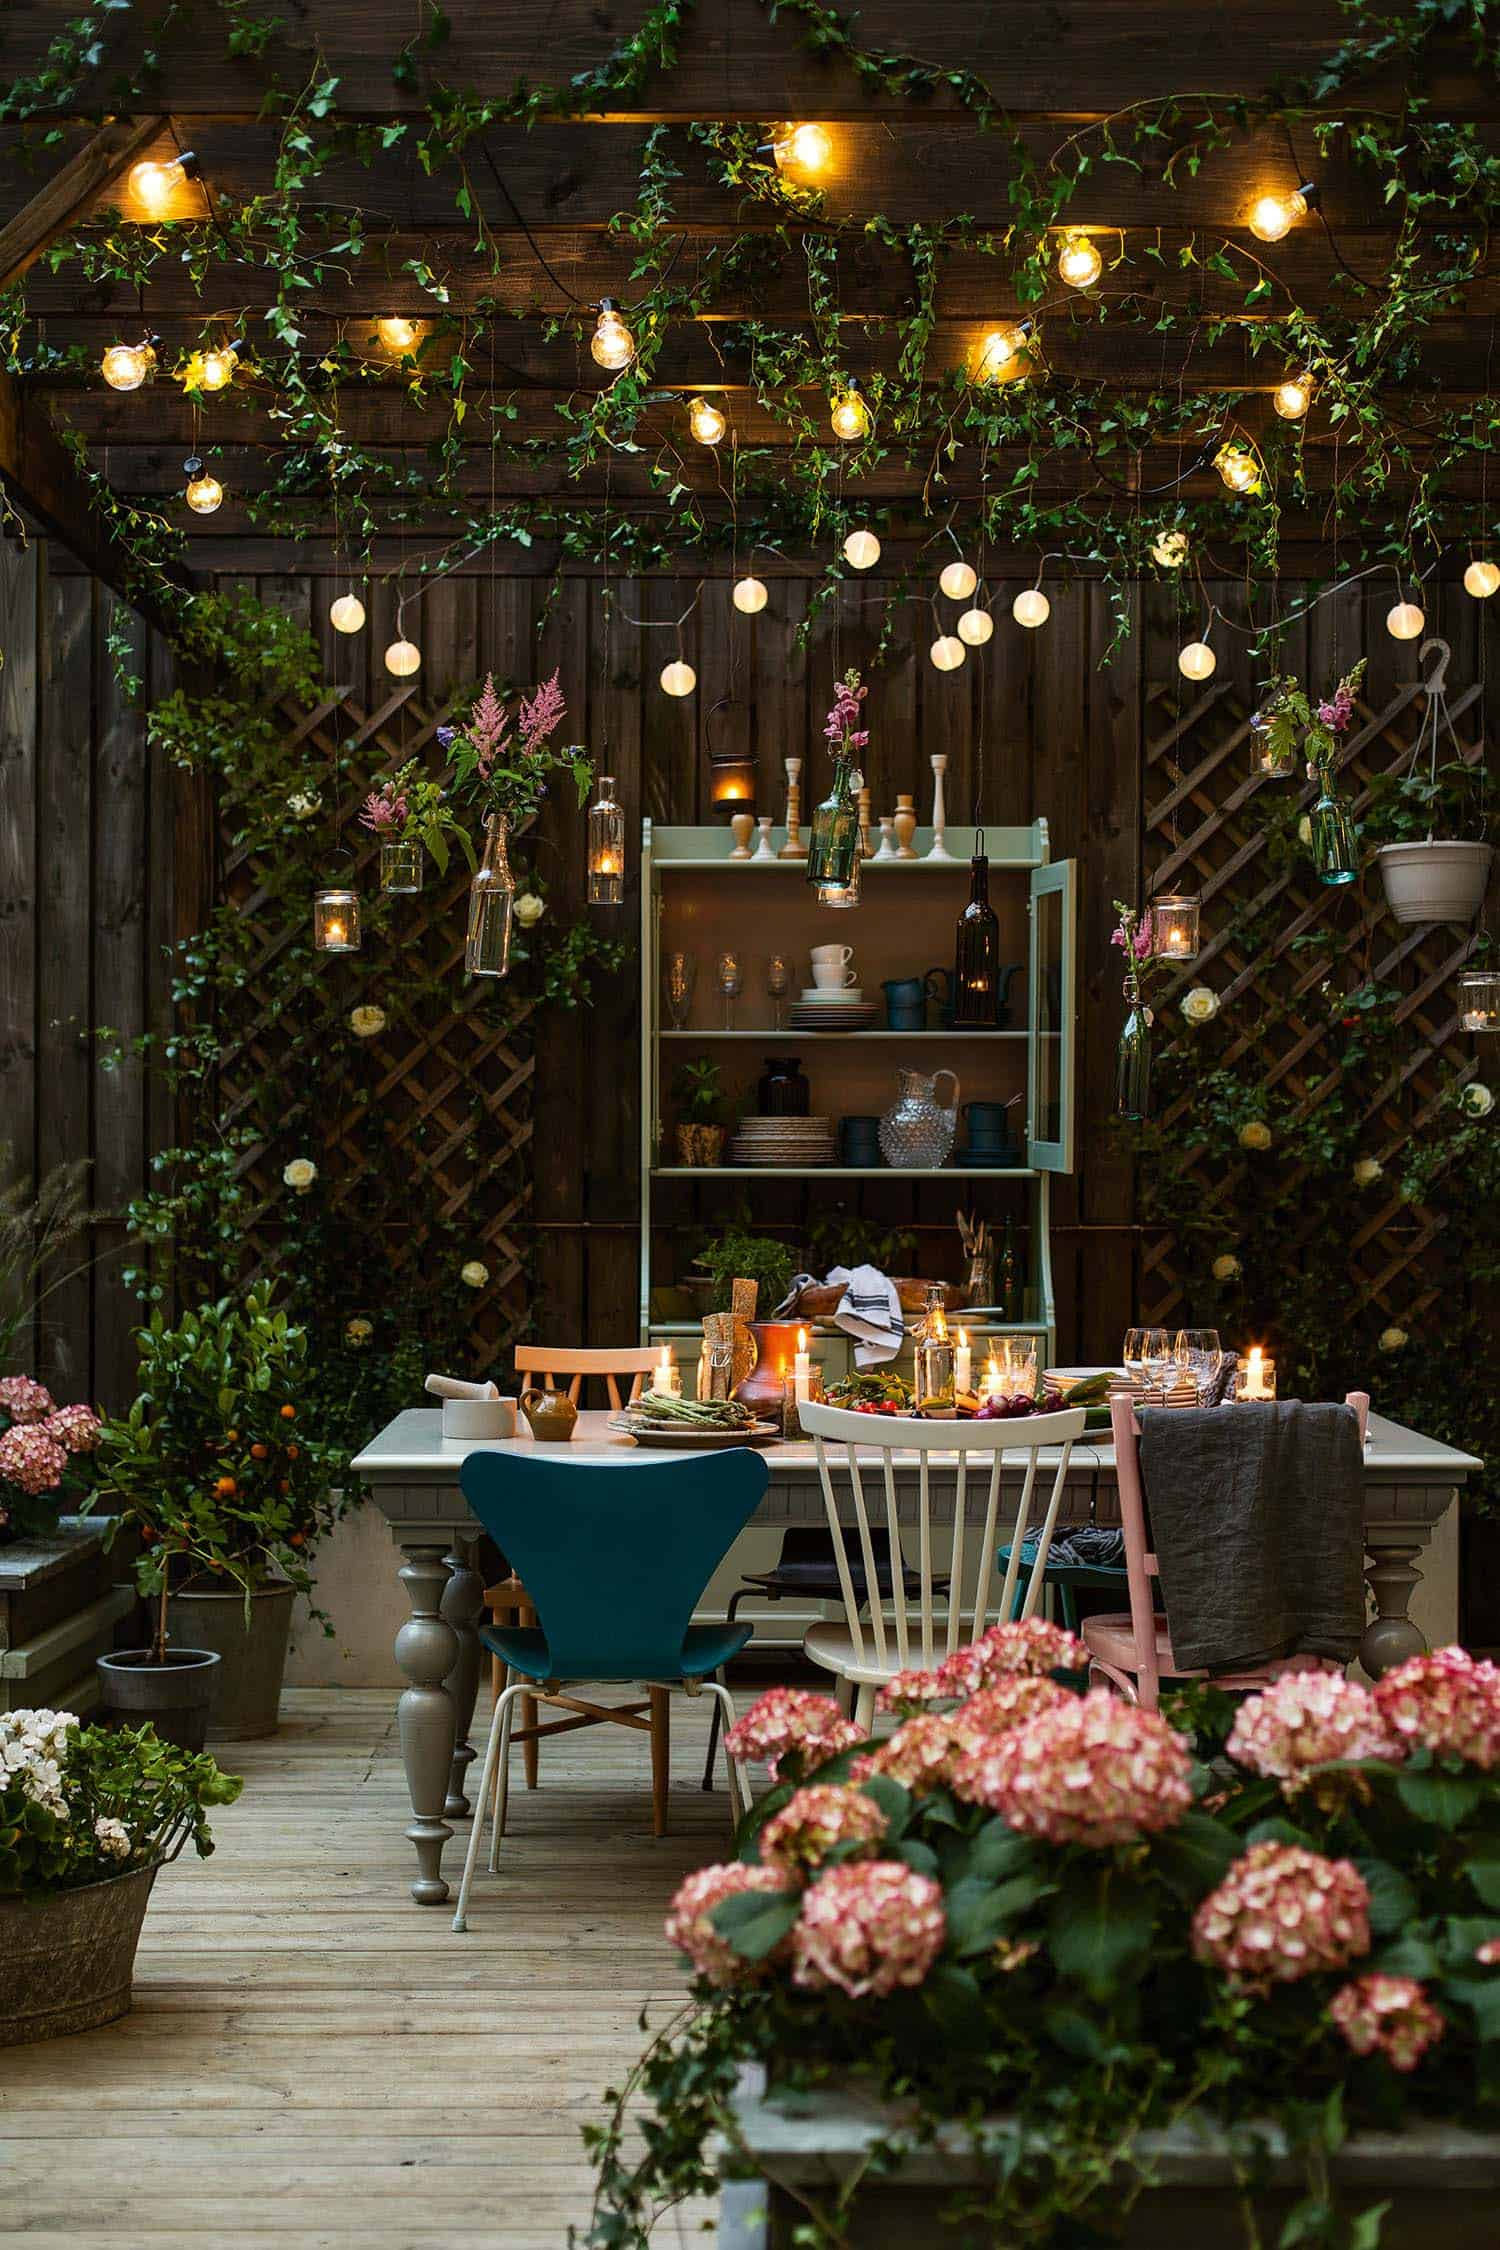 bohemian garden design ideas 01 1 kindesign - Bohemian Design Ideas